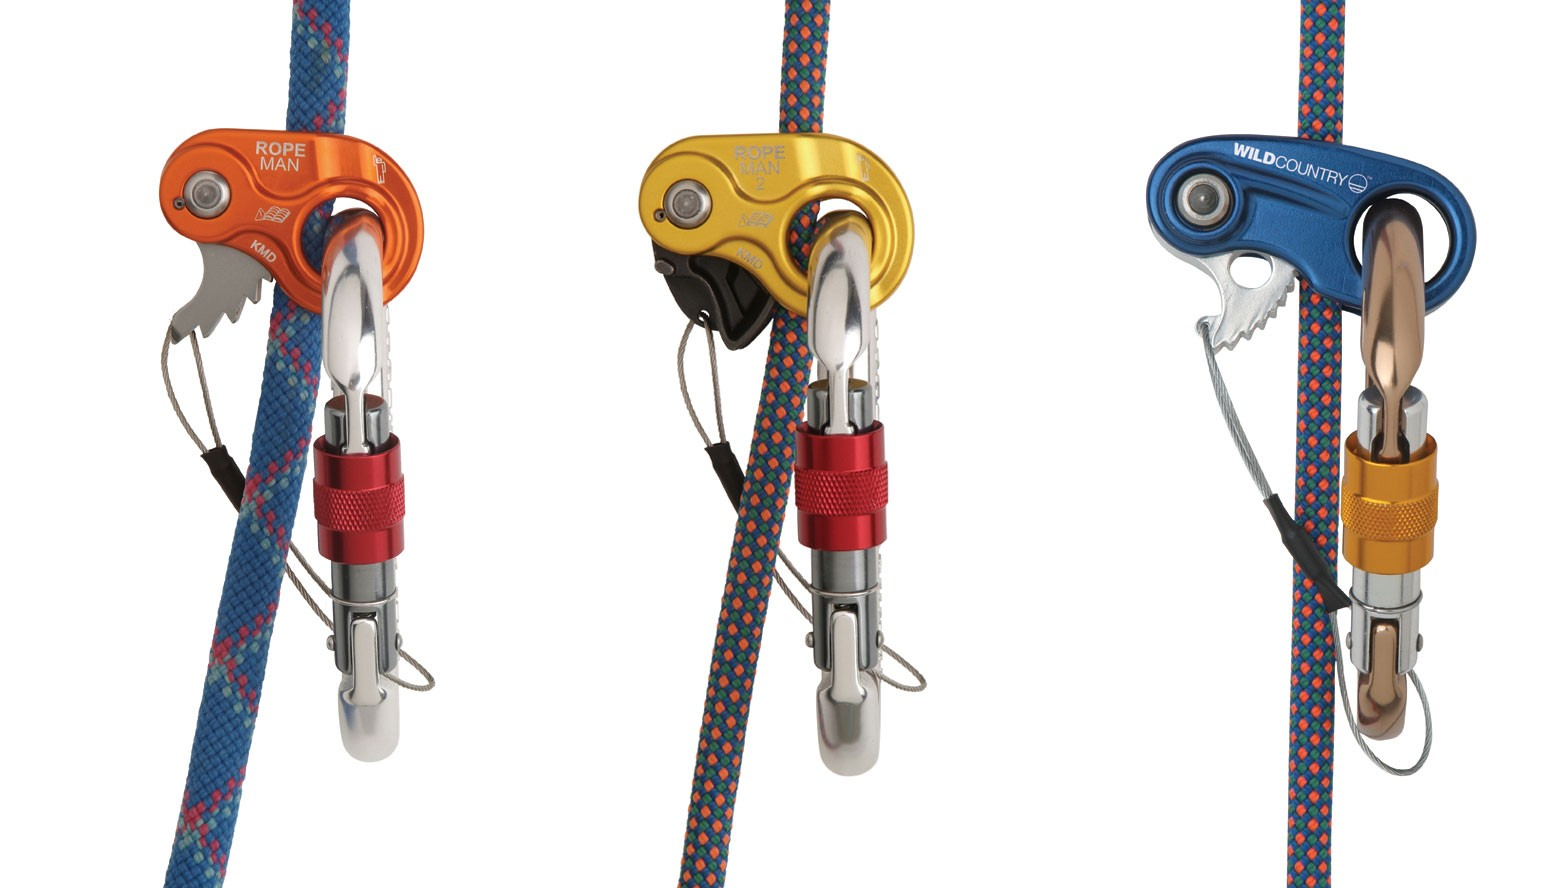 WILD COUNTRY ROPEMAN 1 ASCENDER